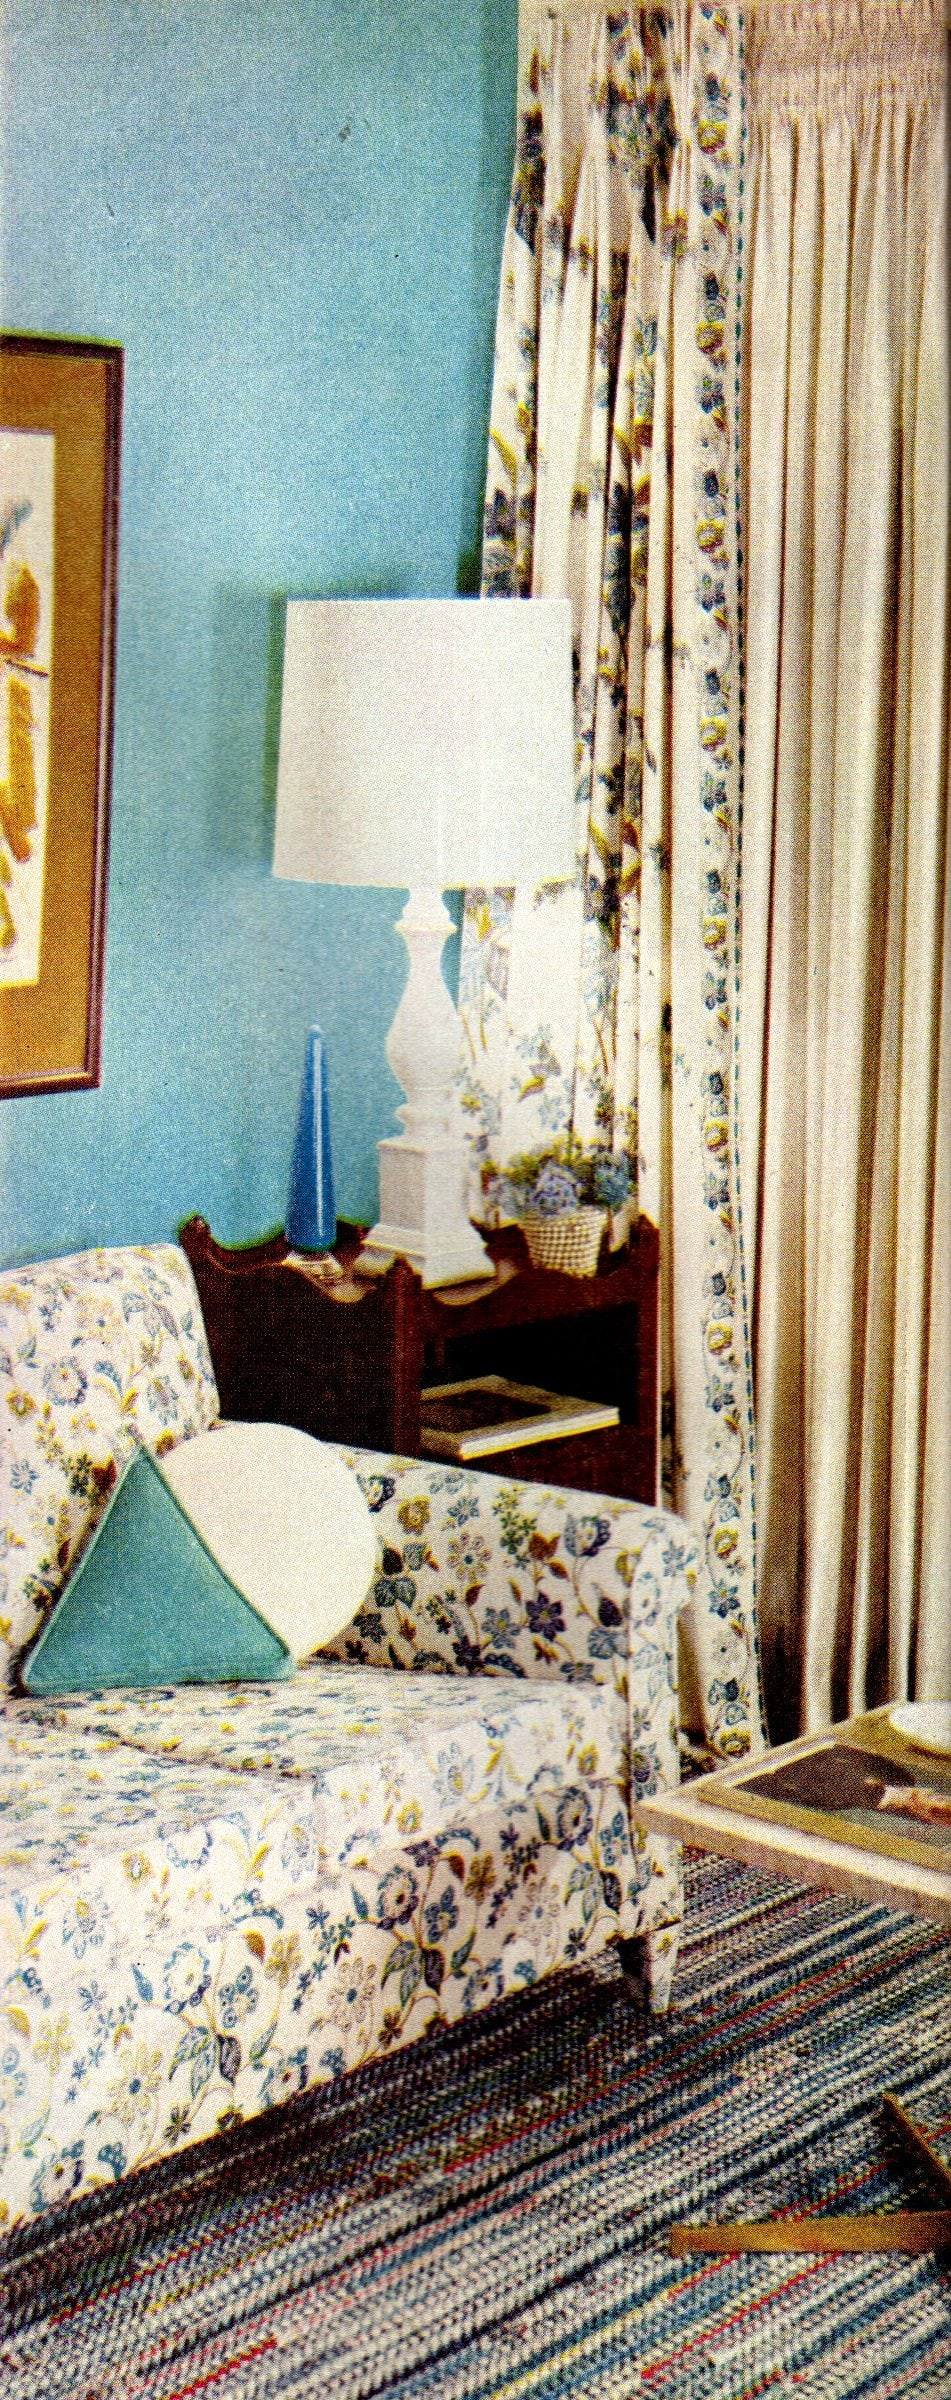 Blue and cream living room decor from the late 50s